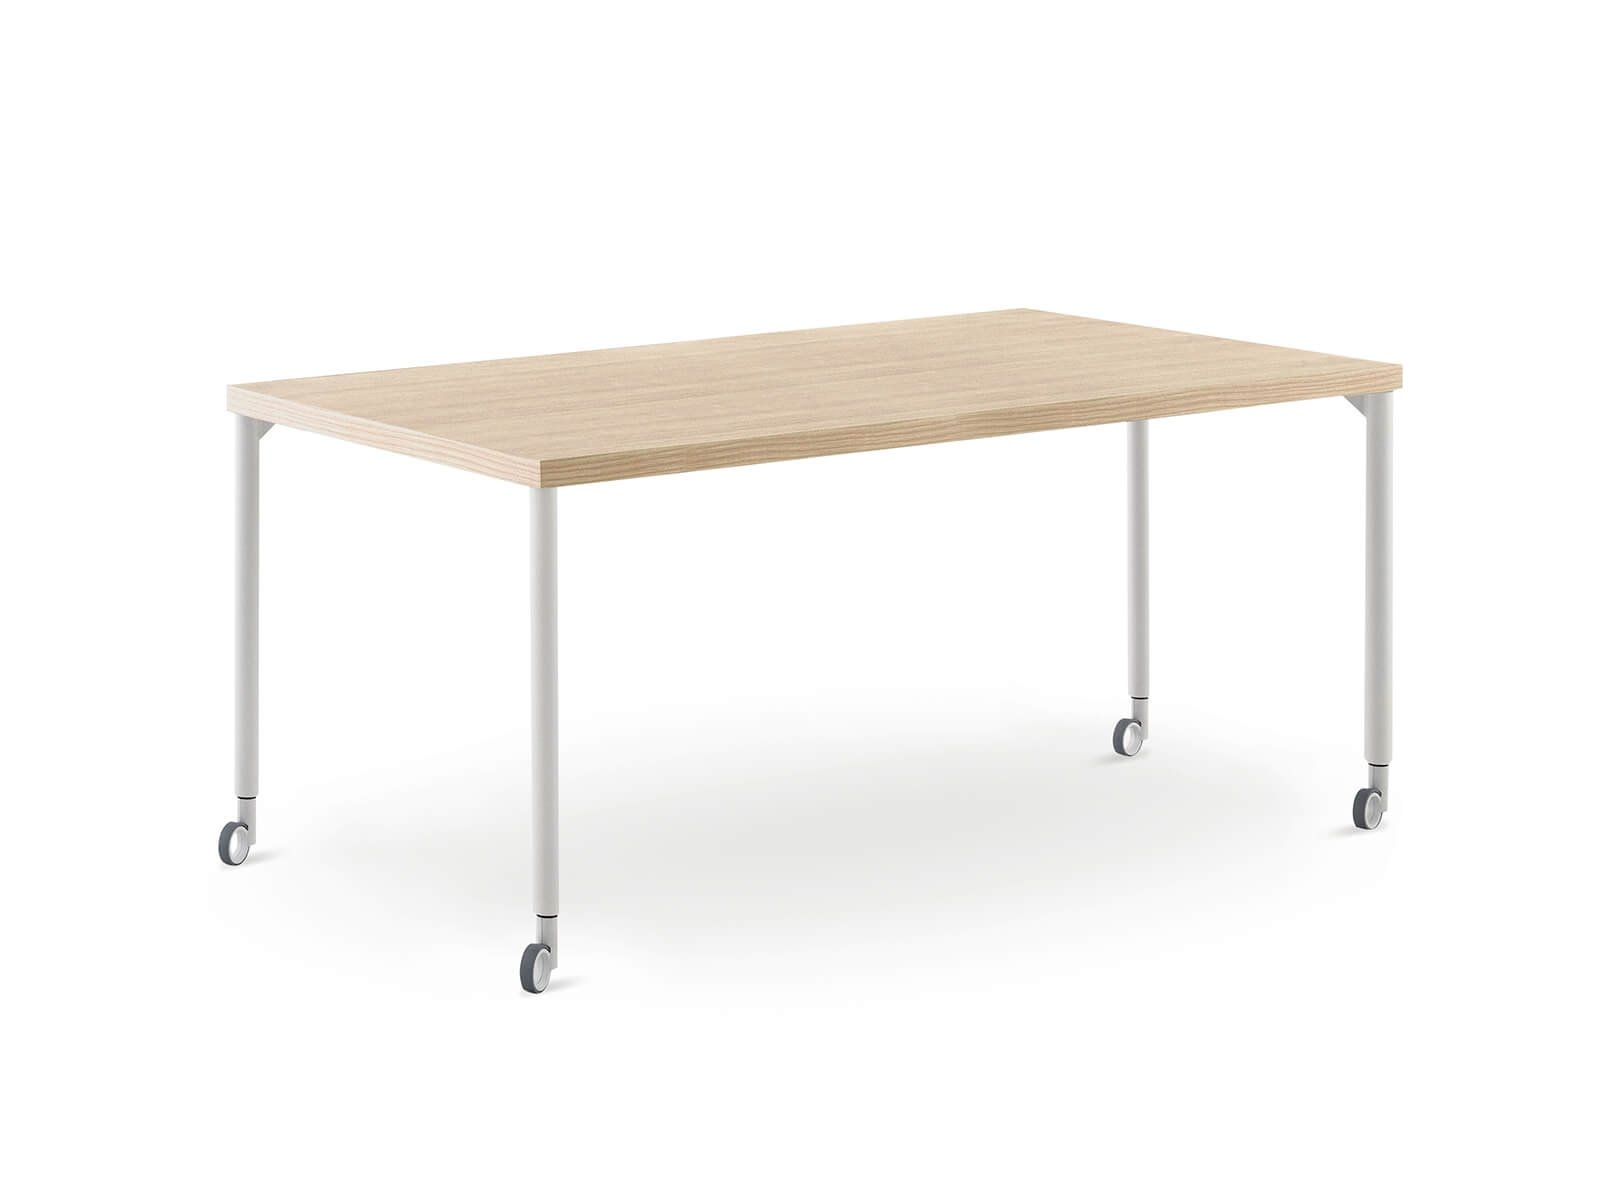 Desk with Move legs